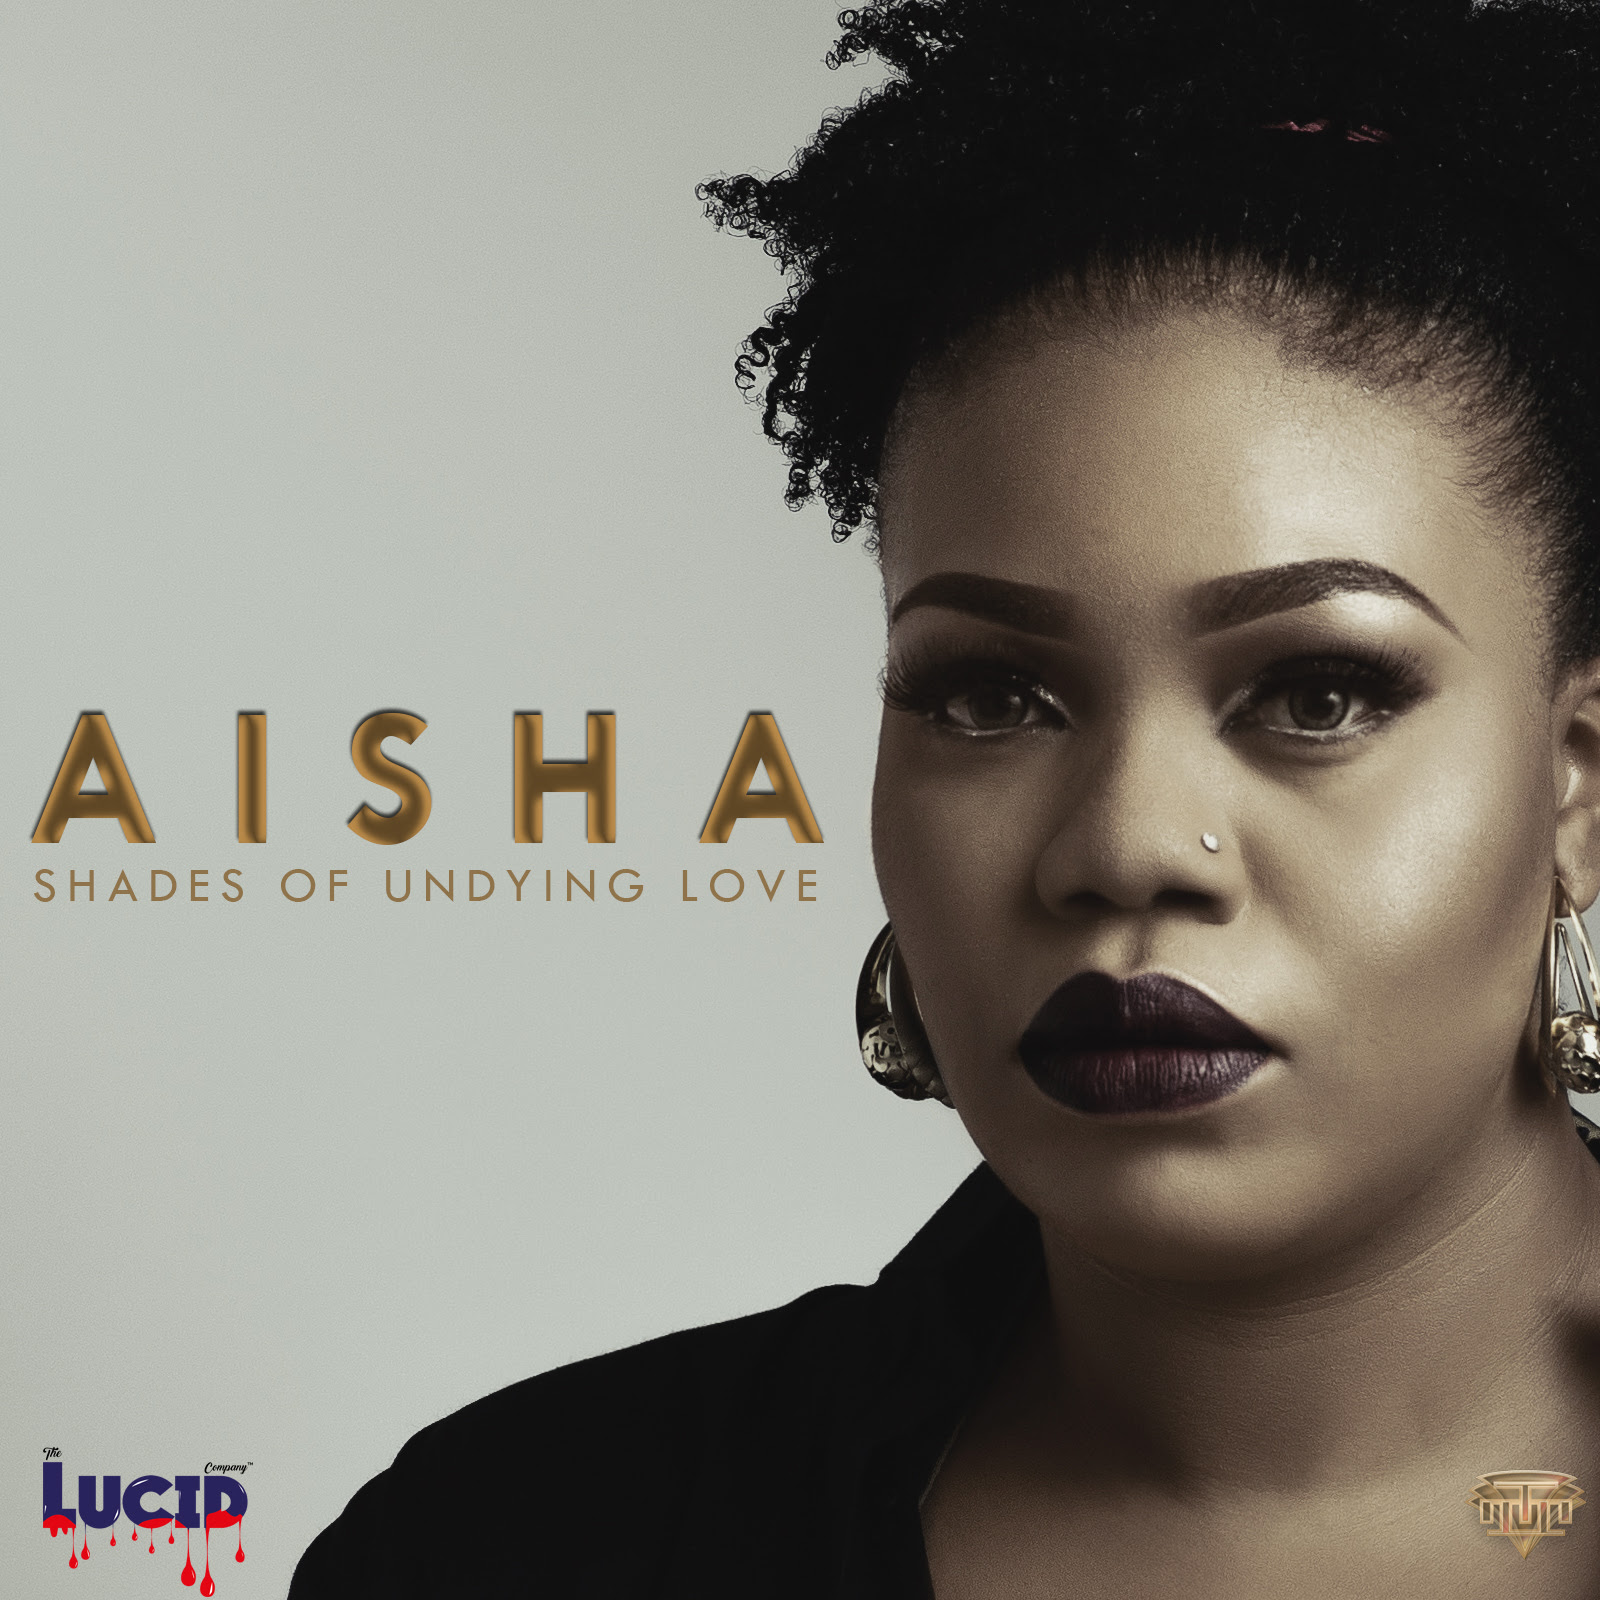 Pre-Order The Shades Of Undying Love E.P. By Aisha